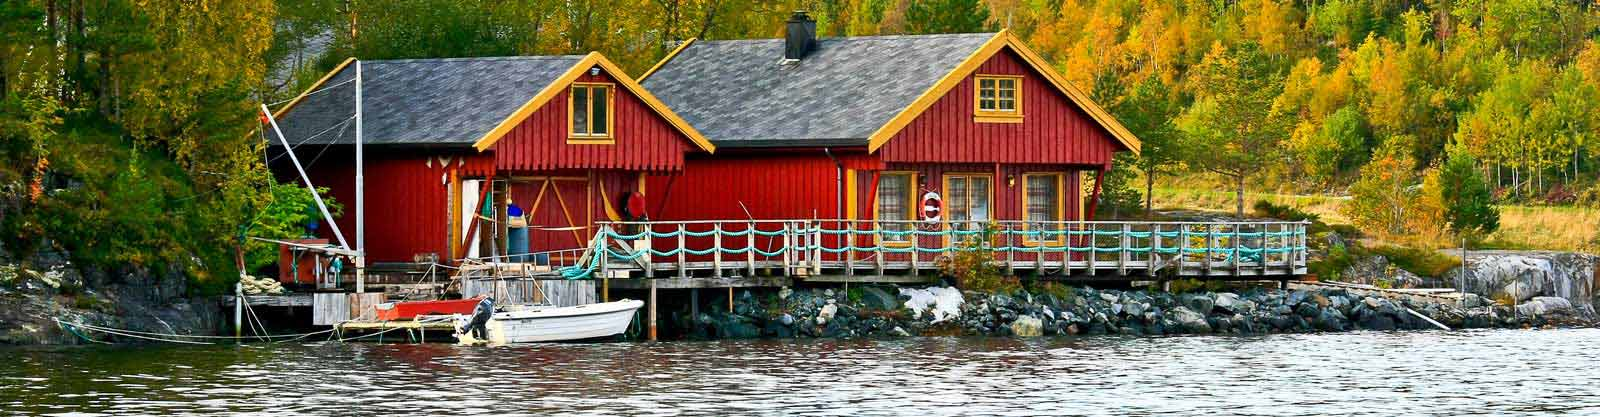 fiskeferie i norge